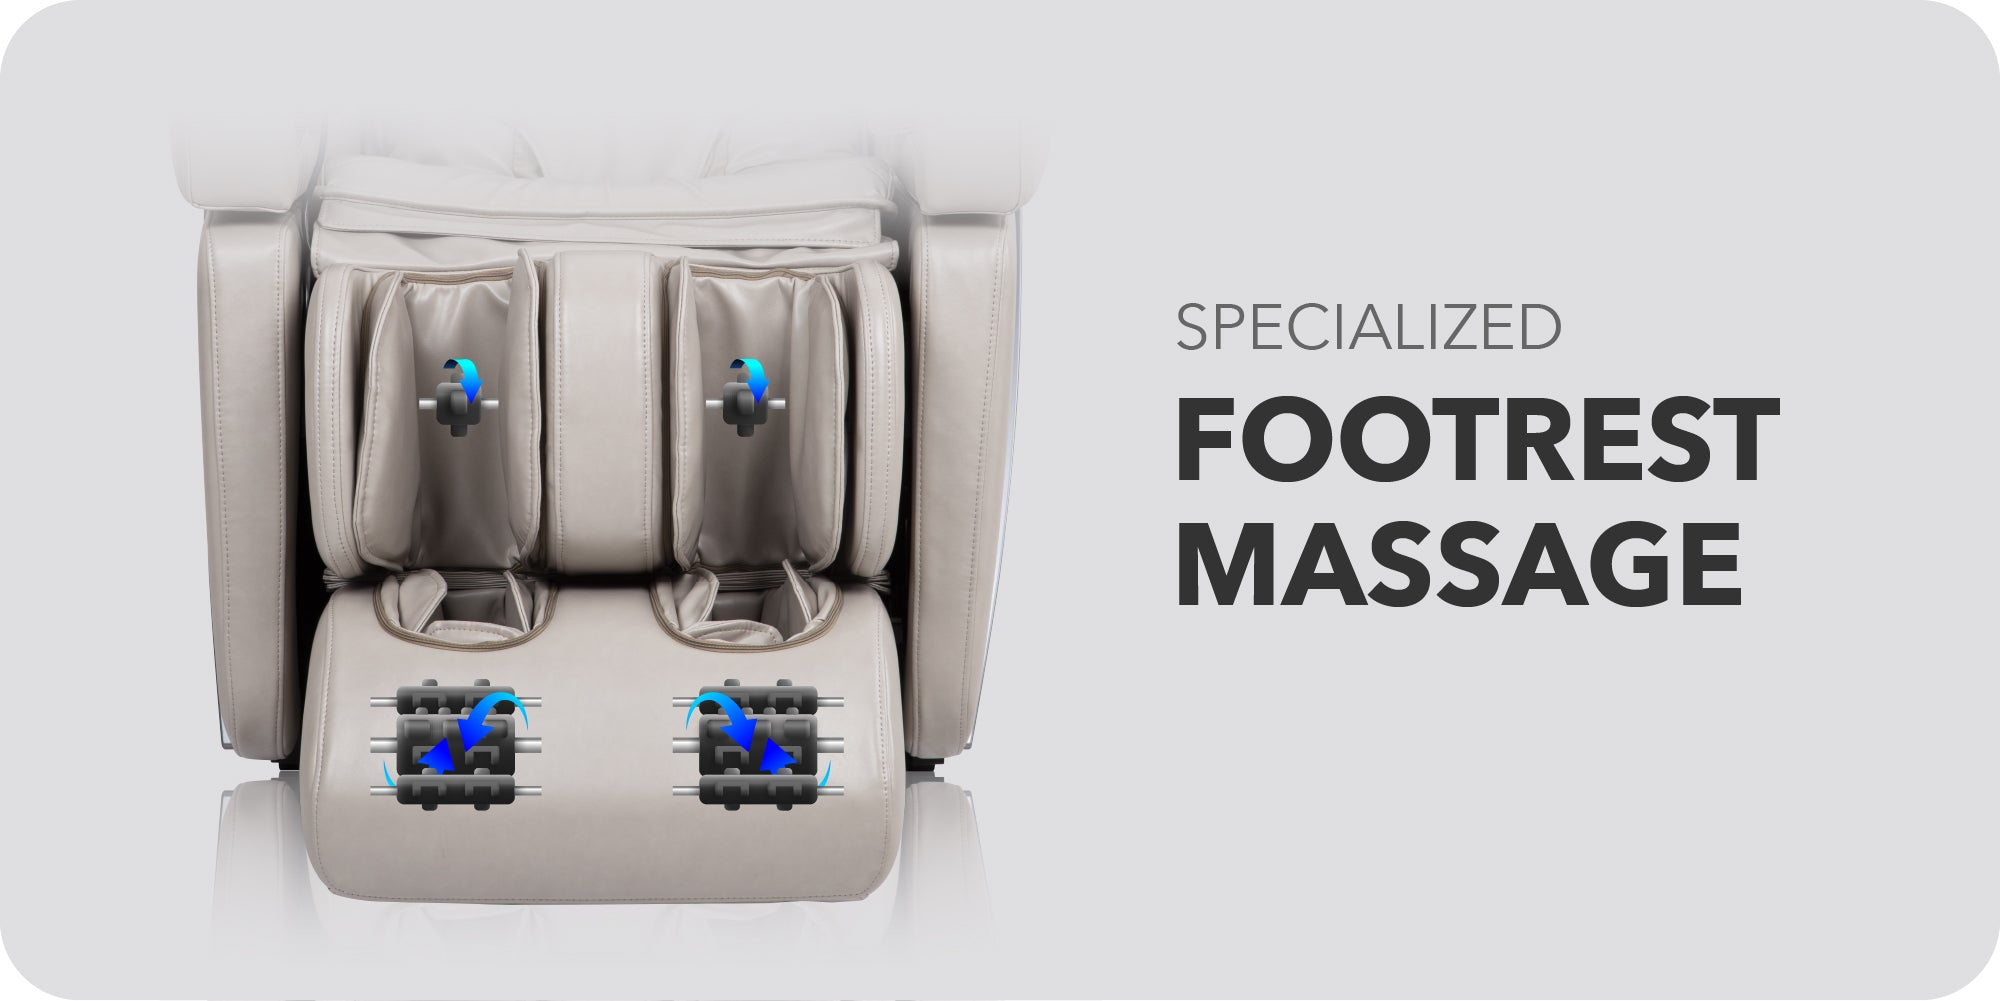 Specialized Footrest Massage